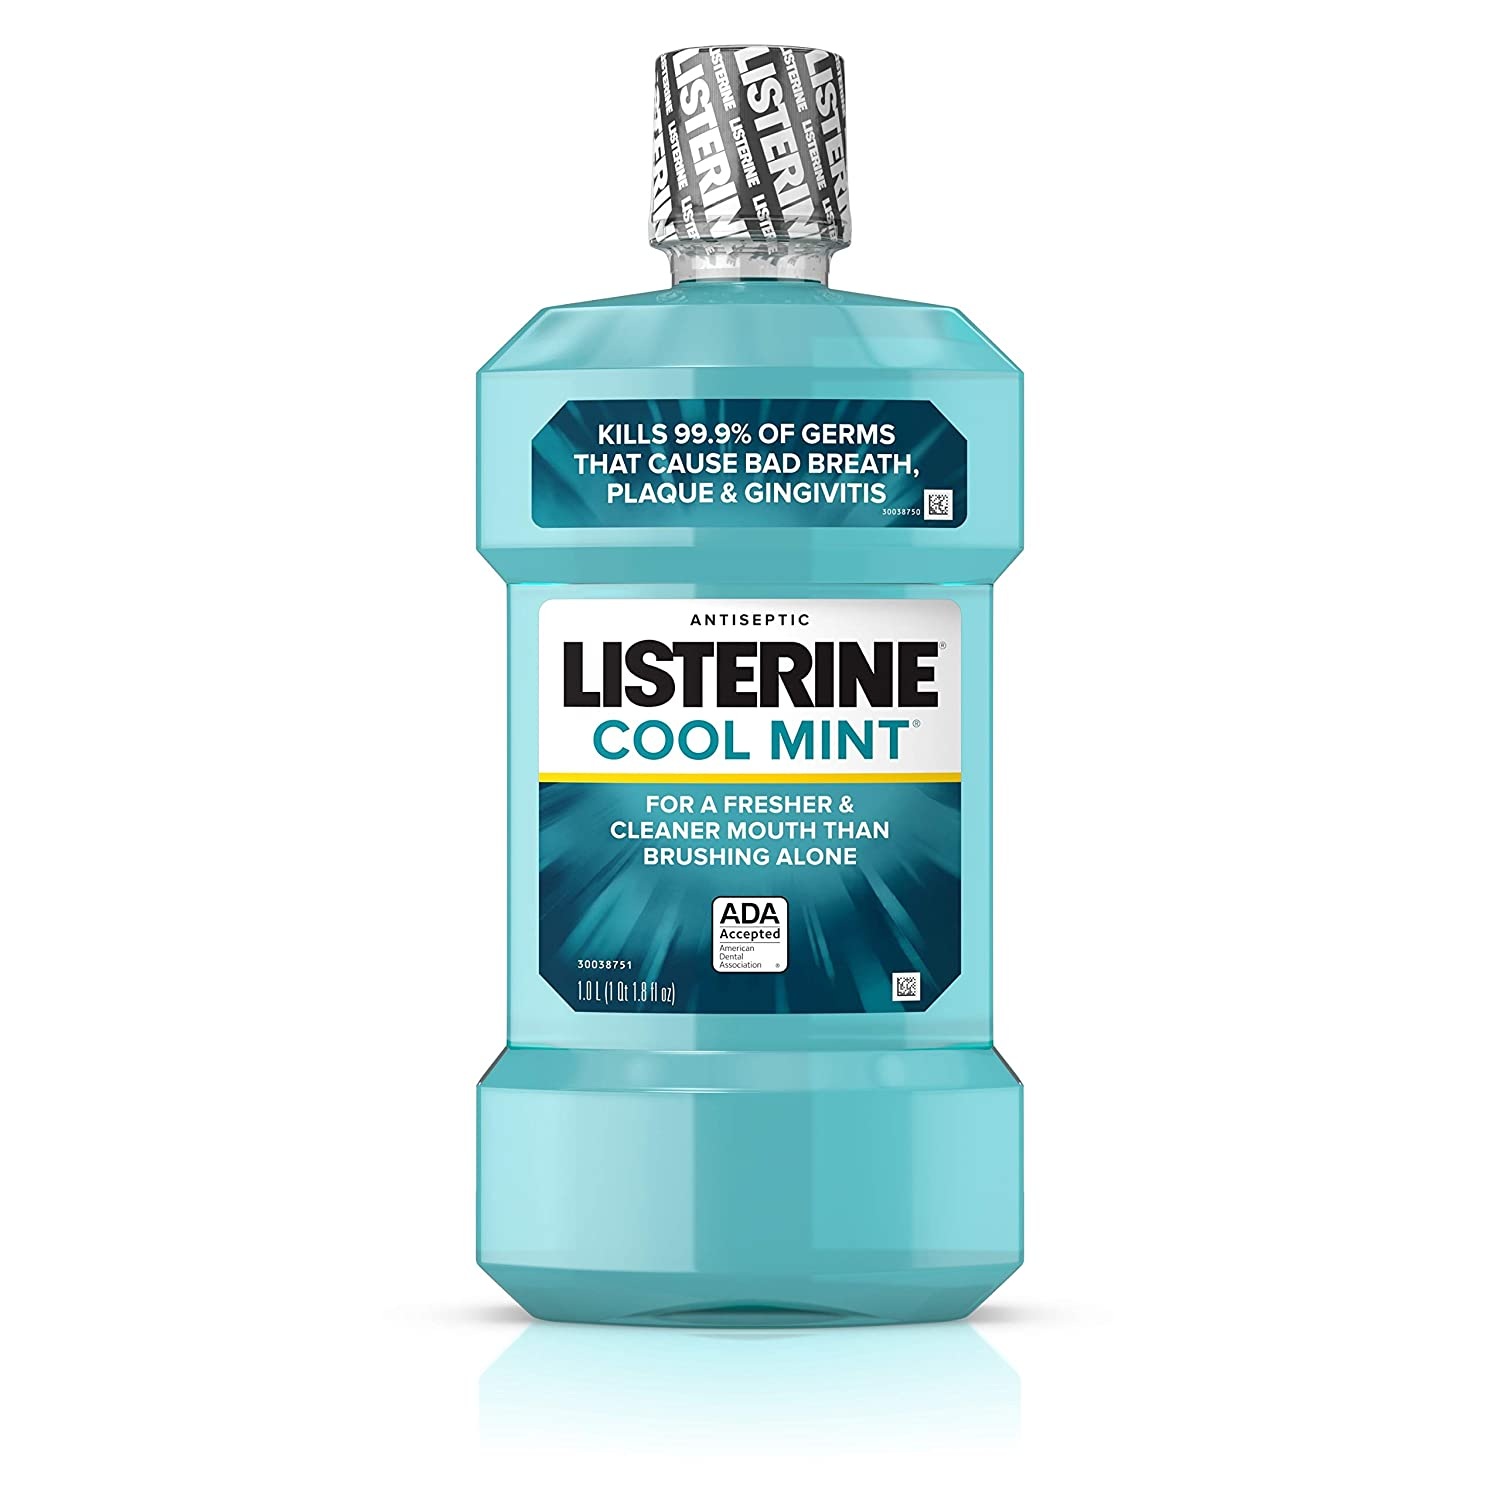 Listerine Cool Mint Antiseptic Mouthwash for Bad Breath, Plaque and Gingivitis, 1 l